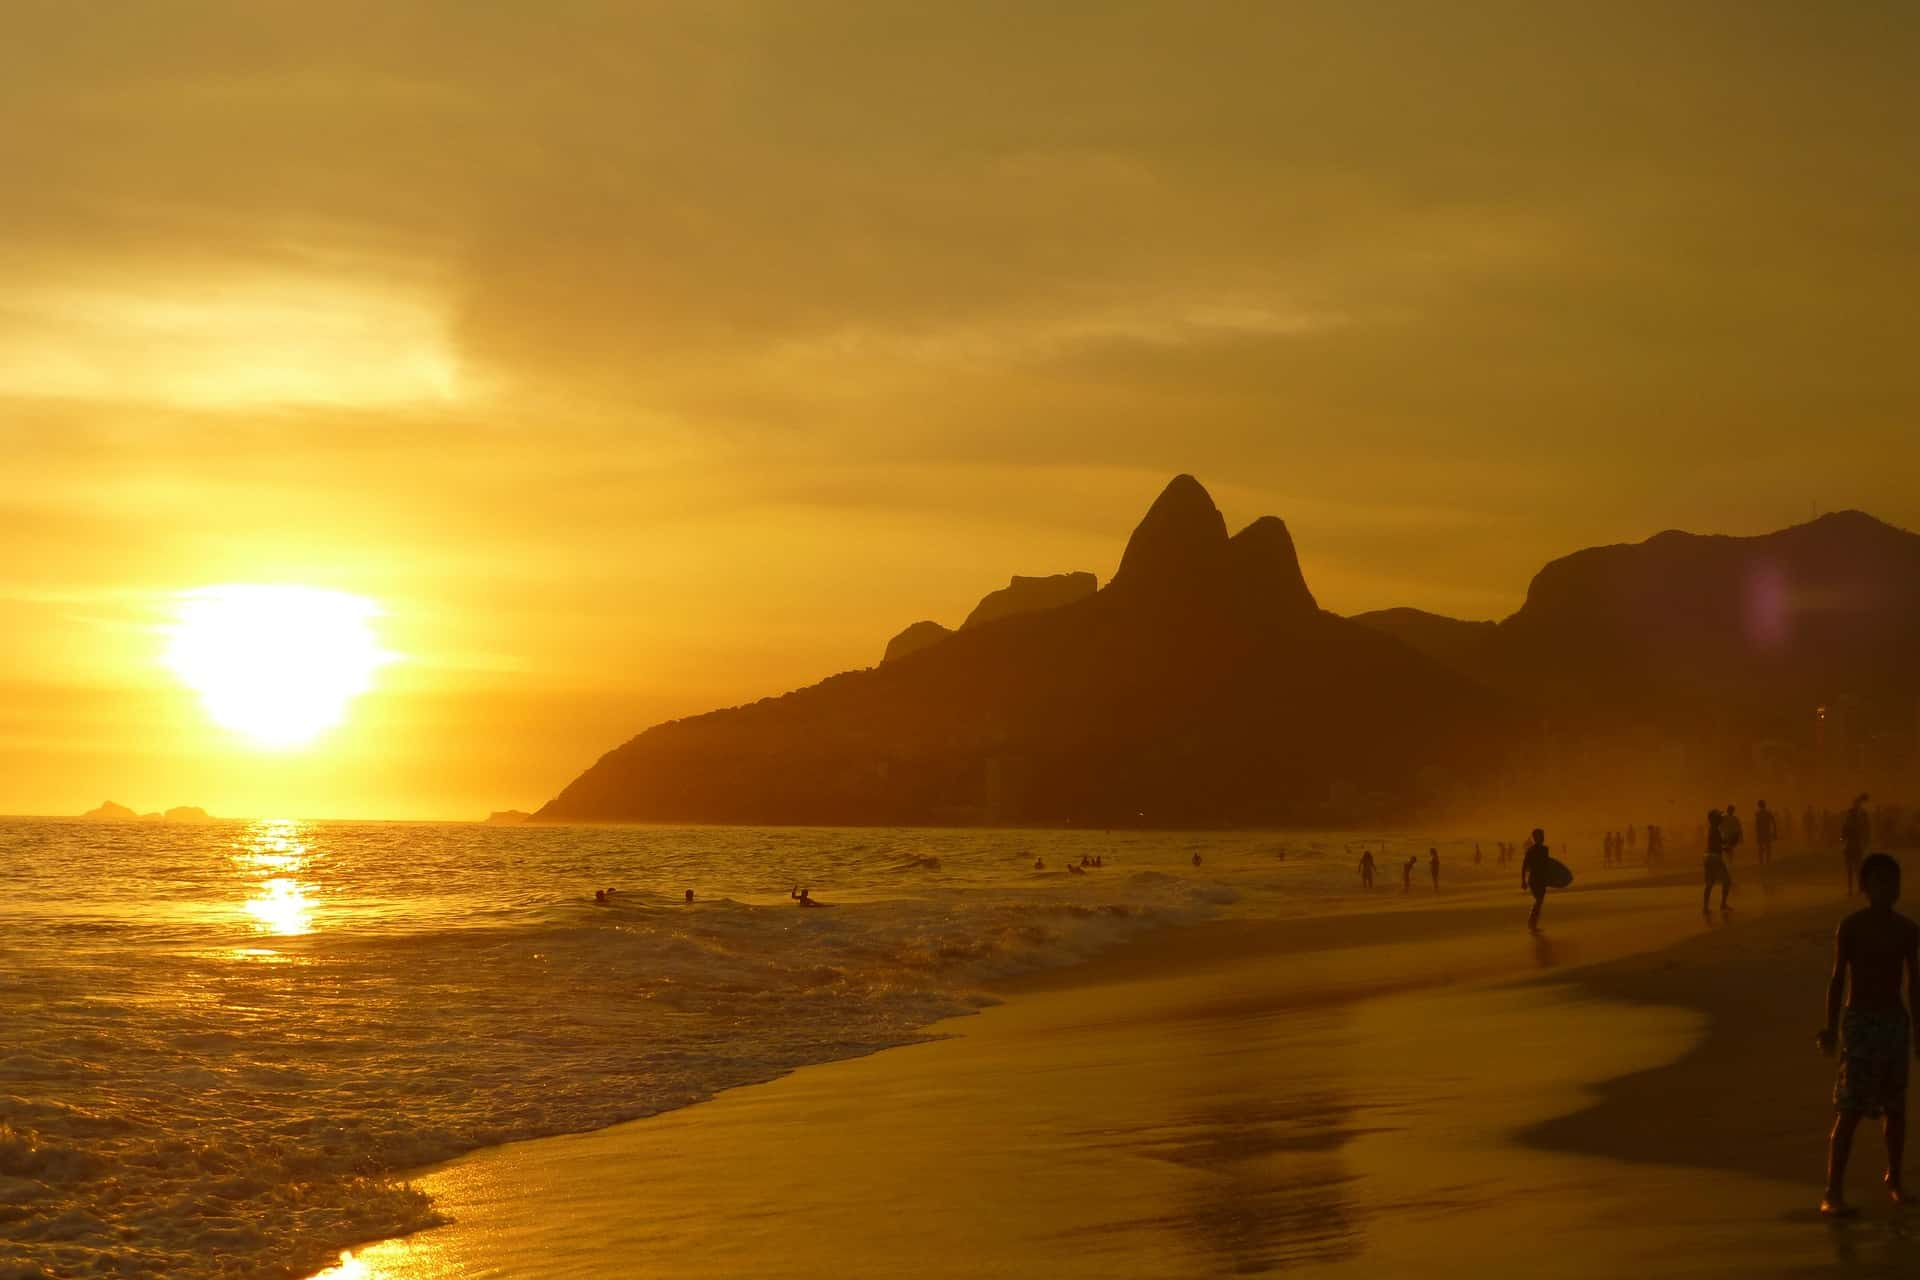 Rio, Brazil - Best Family Beaches in the World